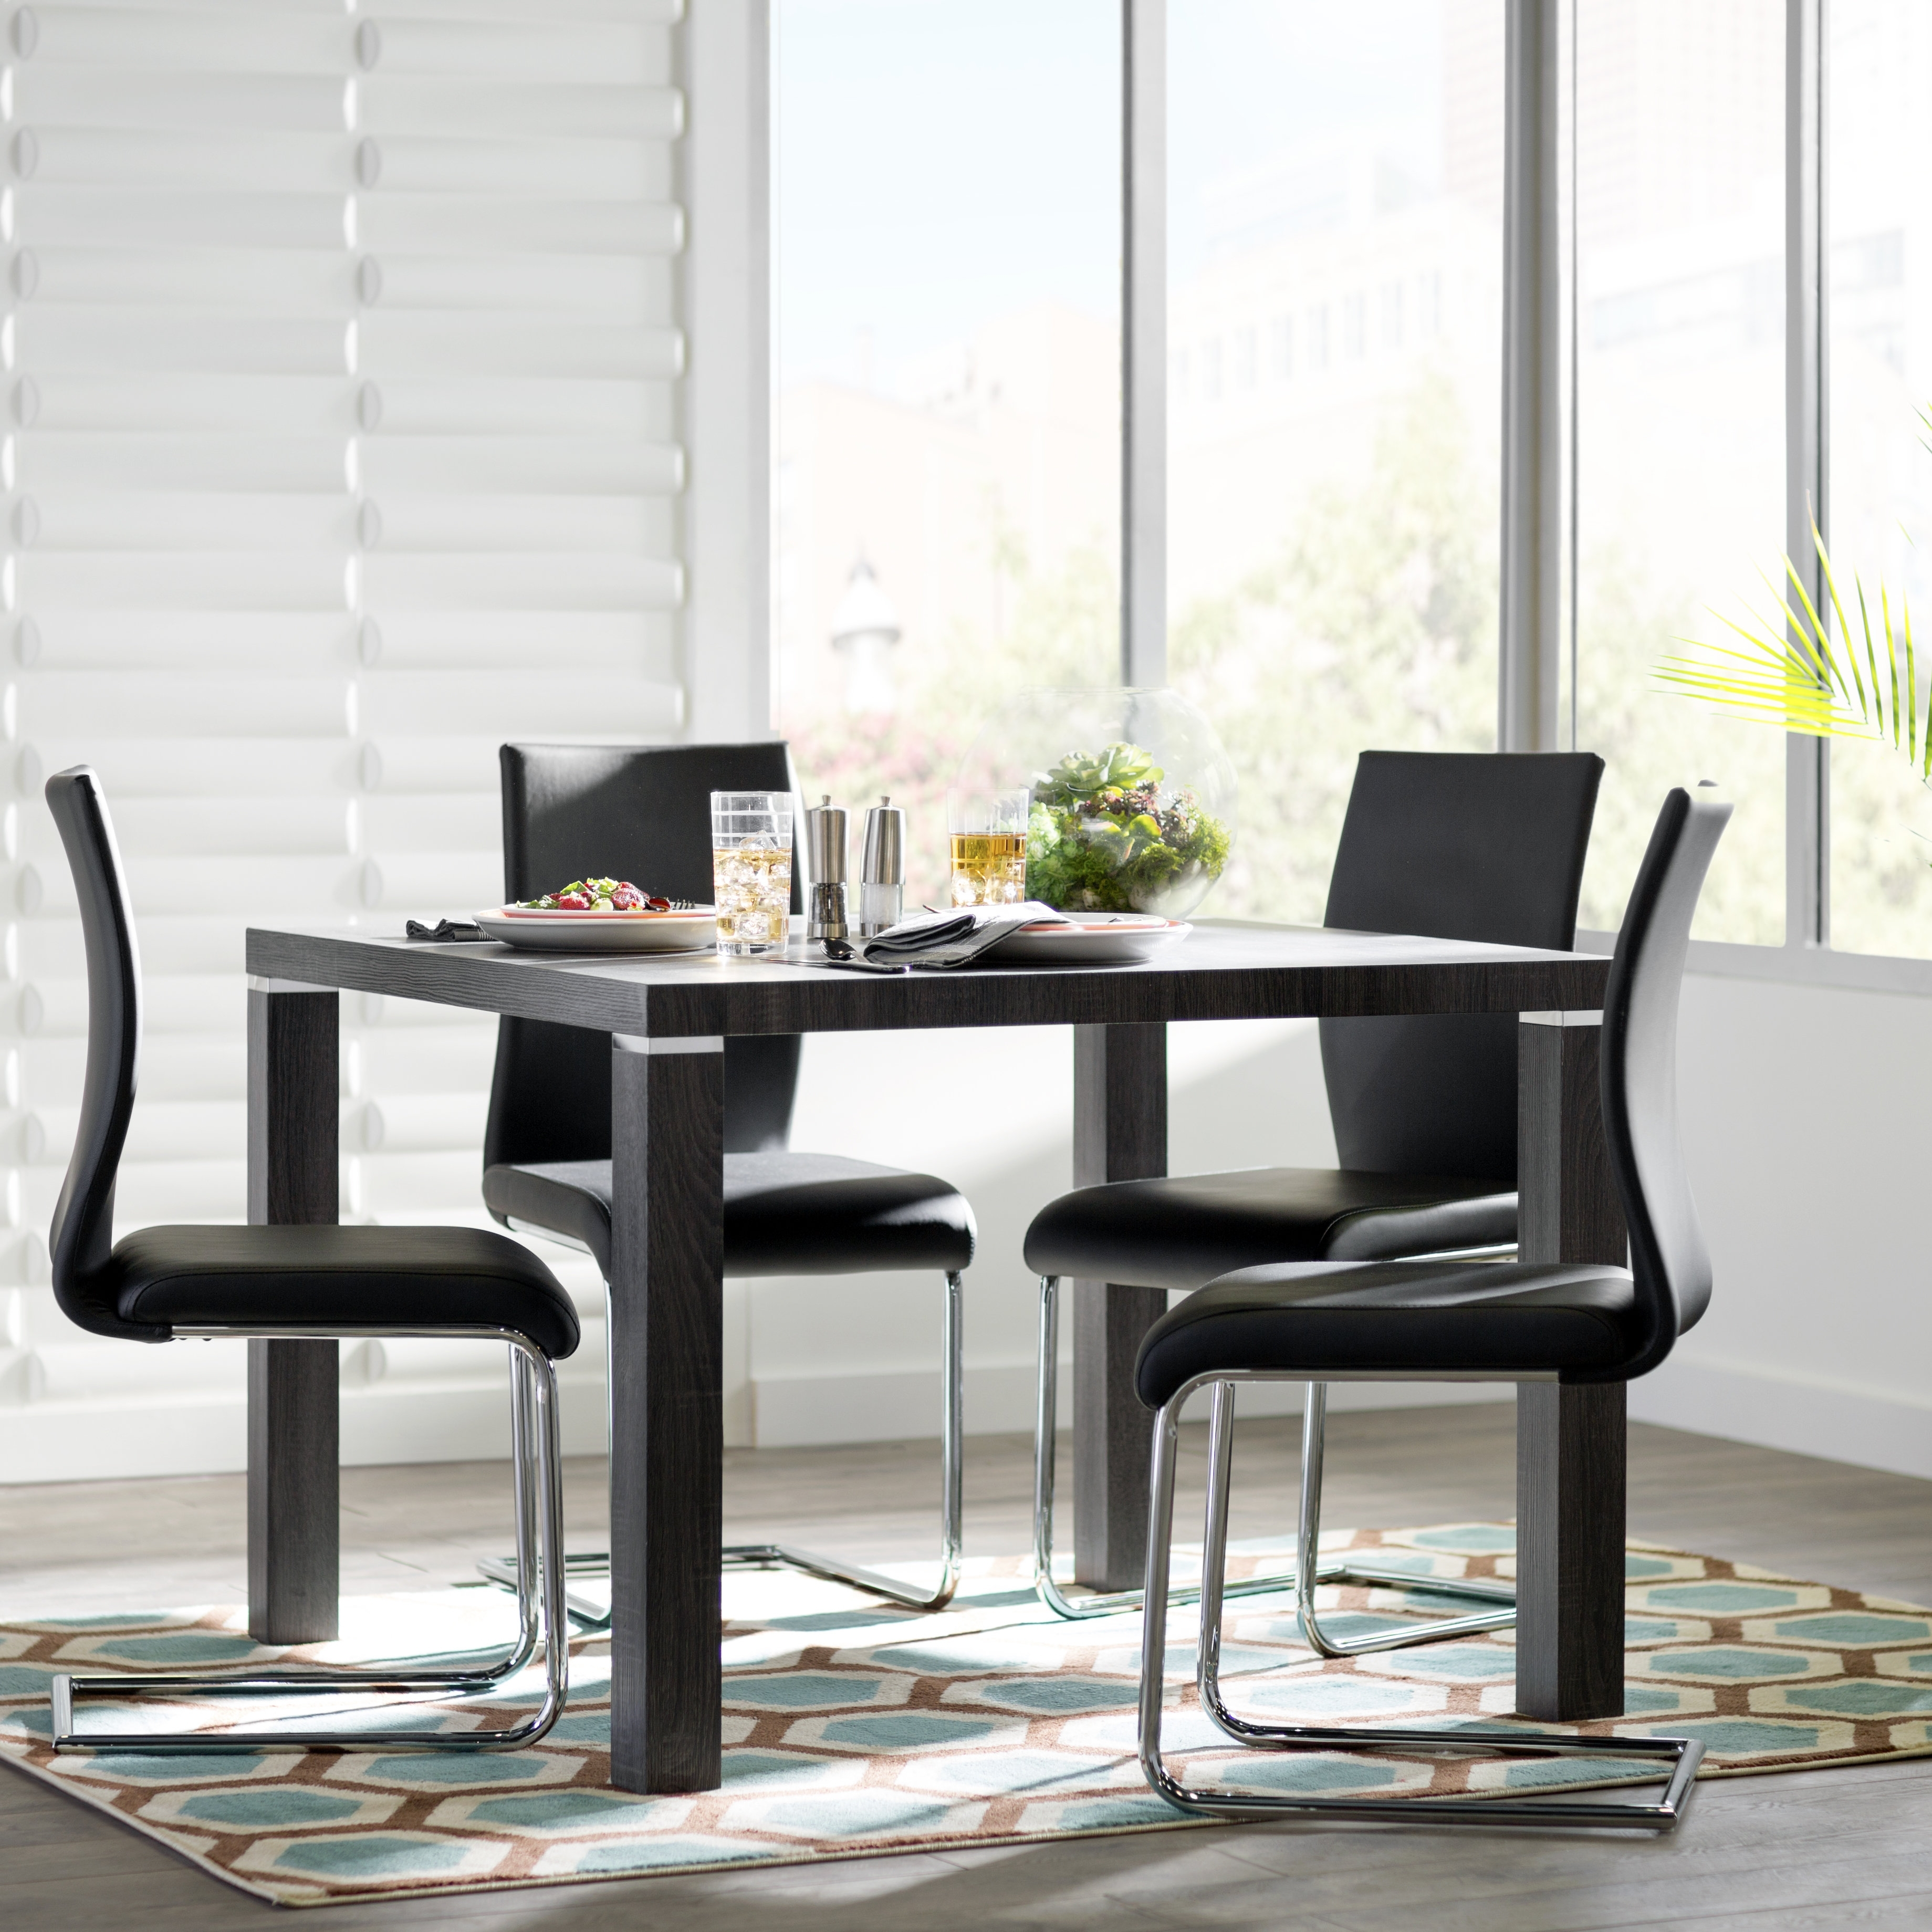 Ebern Designs Alva 5 Piece Dining Set & Reviews | Wayfair Intended For Best And Newest Norwood 6 Piece Rectangular Extension Dining Sets With Upholstered Side Chairs (Image 5 of 20)